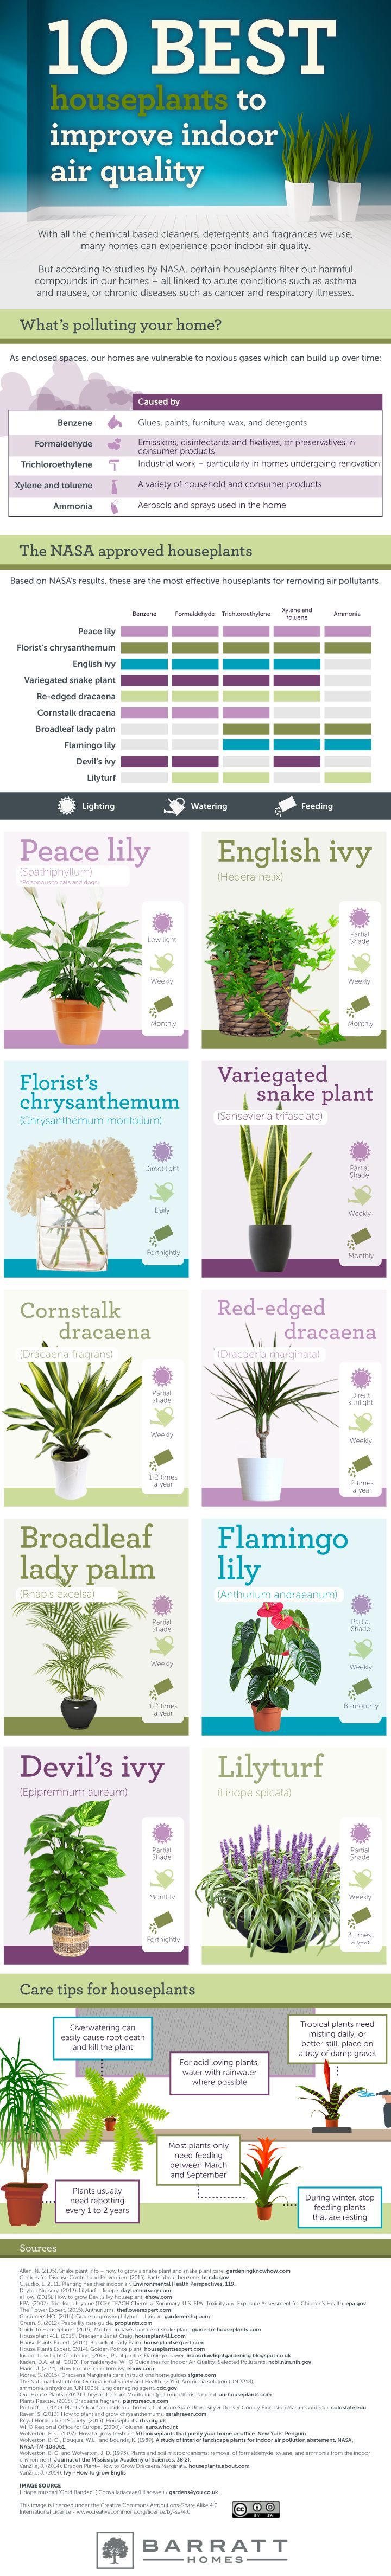 10 Best Plants to Improve Indoor Air Quality #infographic #Home #Health